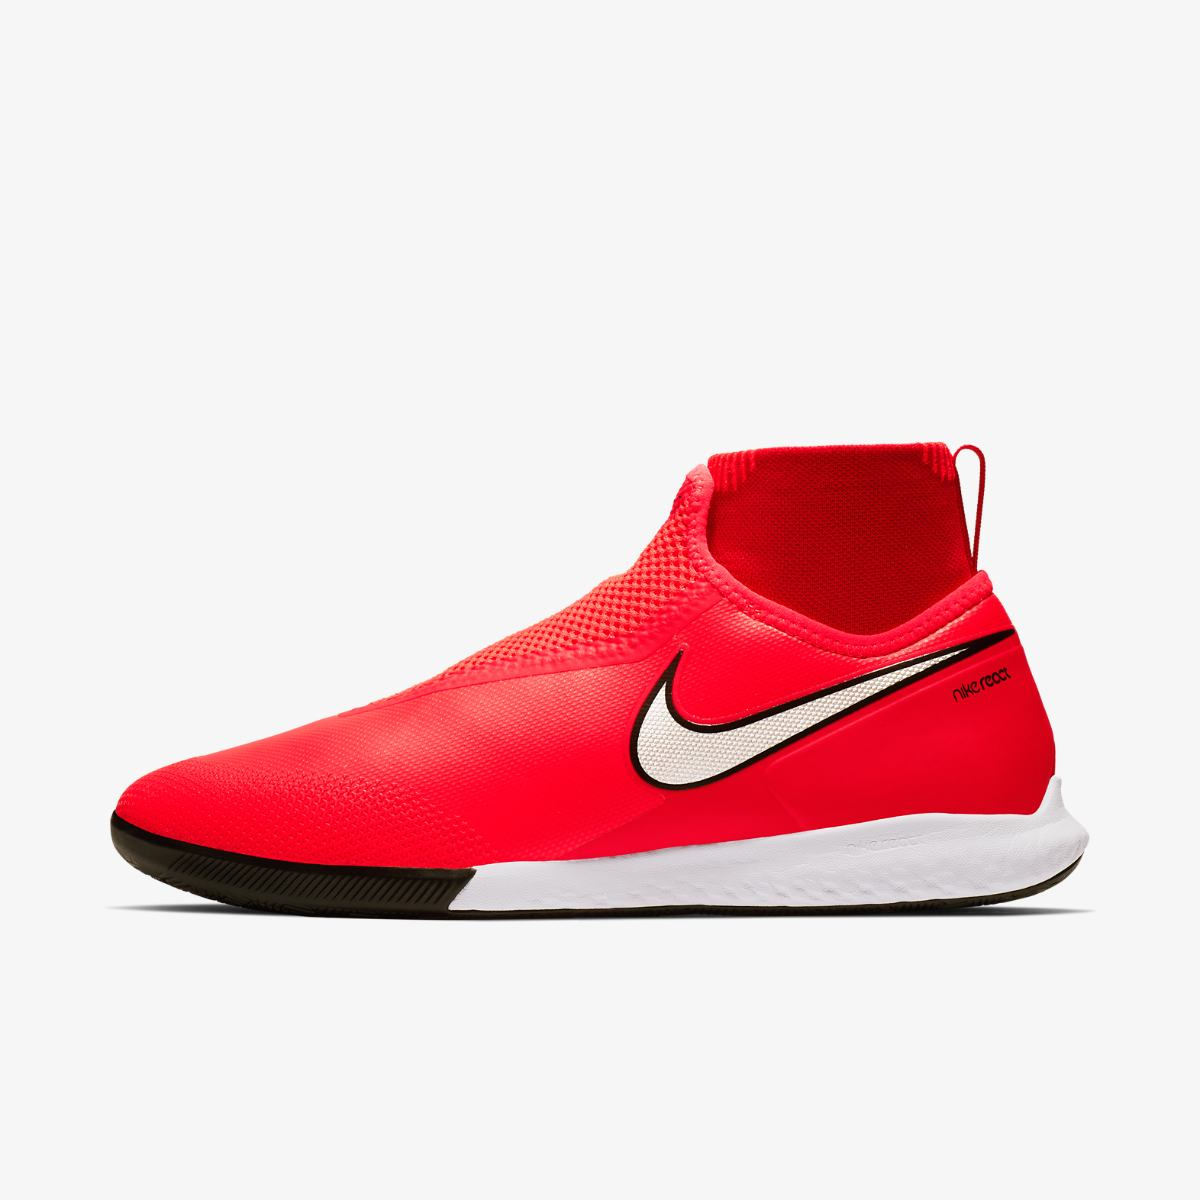 БУТСЫ NIKE REACT PHANTOM VSN PRO DF IC